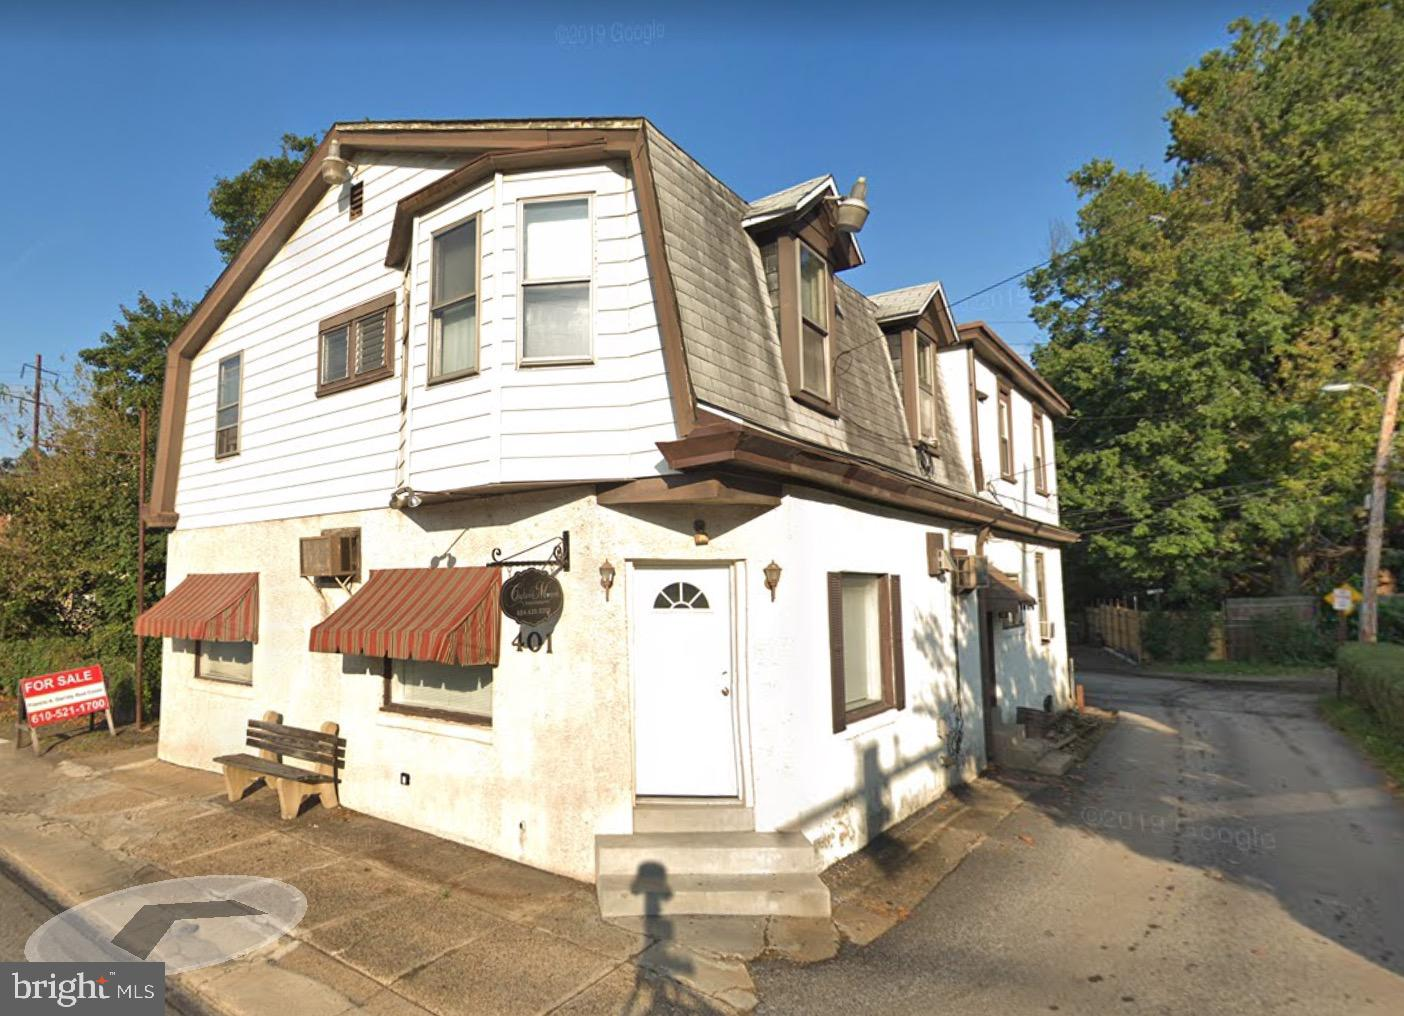 401 E CHESTER PIKE, RIDLEY PARK, PA 19078